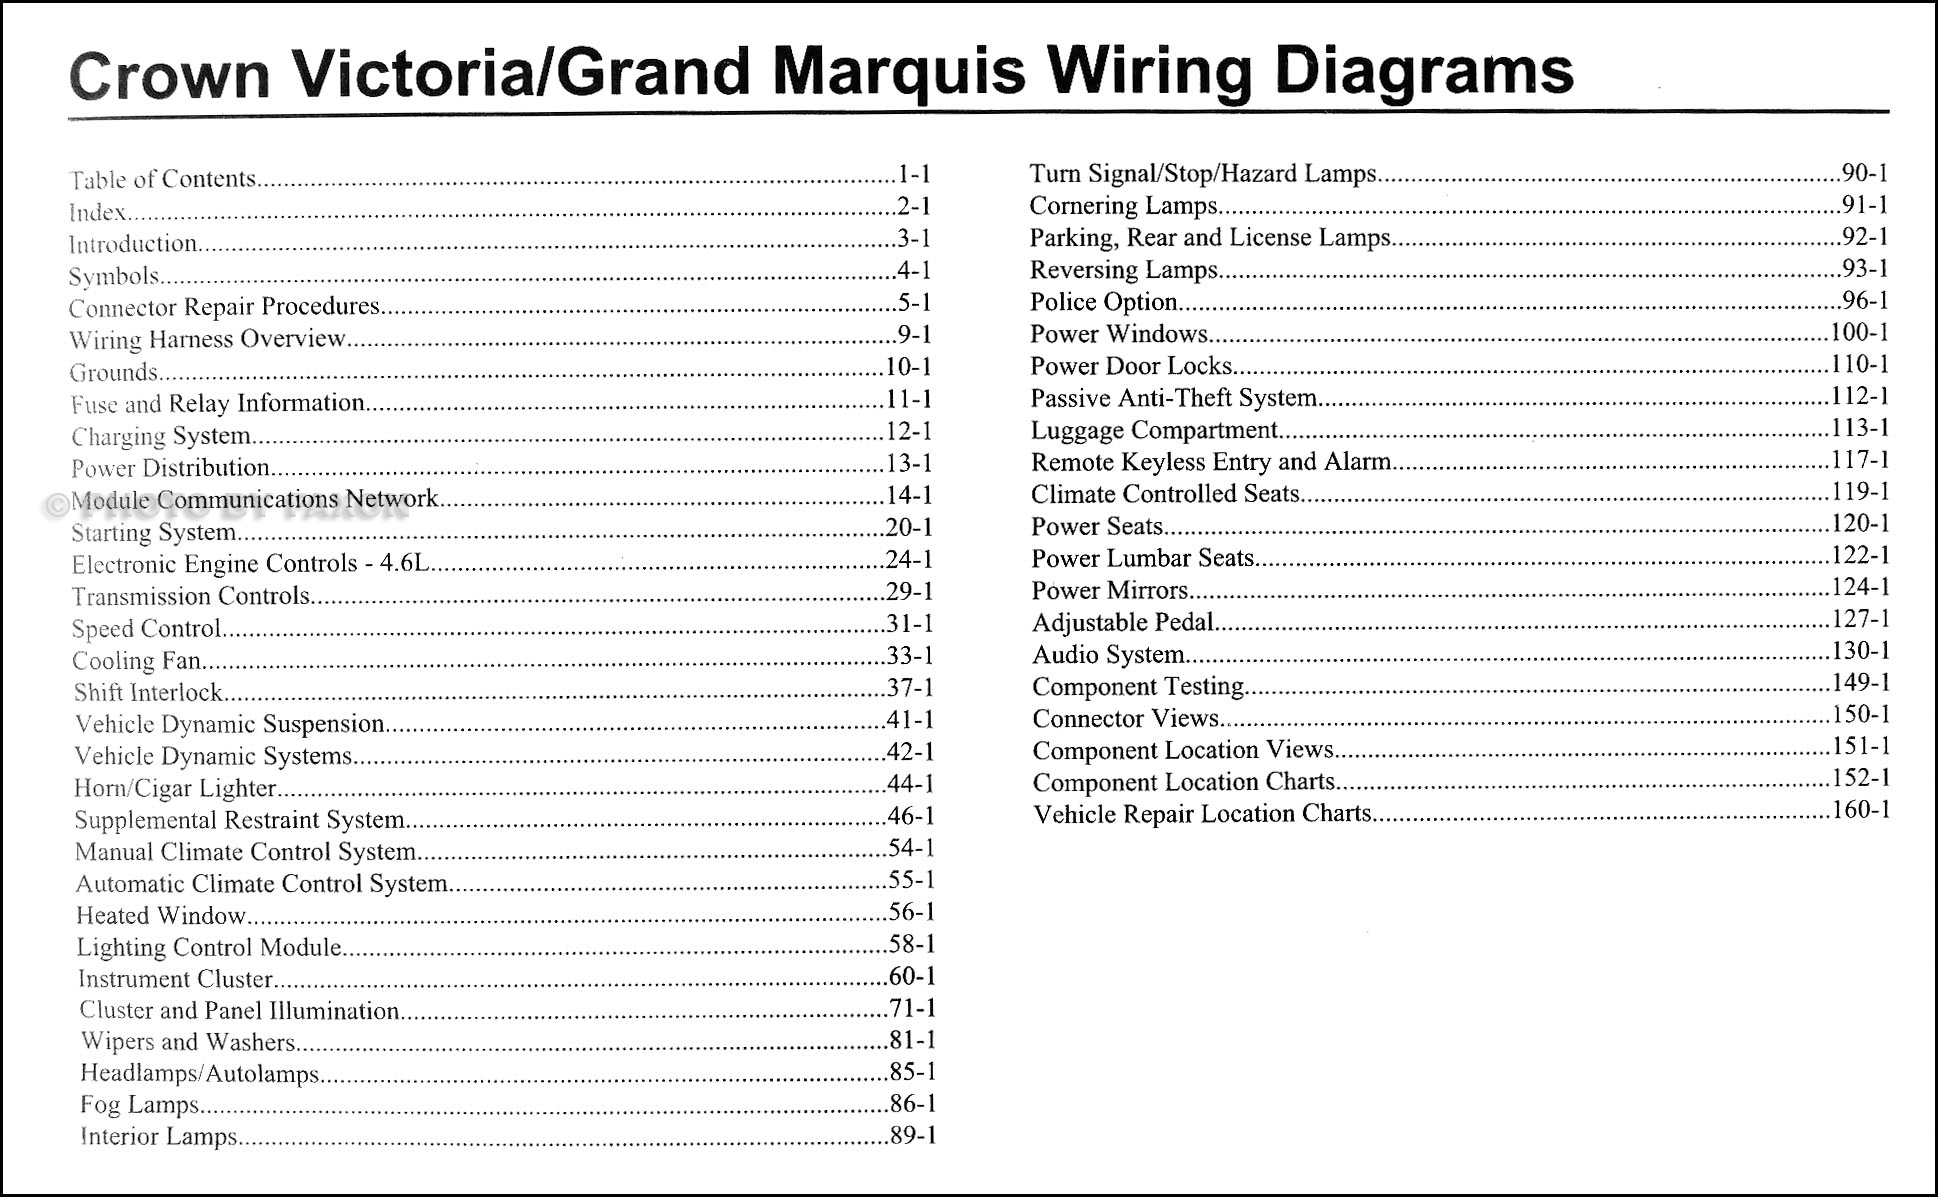 2009FordCrownVictoriaOWD TOC 2009 crown victoria & grand marquis original wiring diagram manual 2004 ford crown victoria radio wiring diagram at gsmportal.co